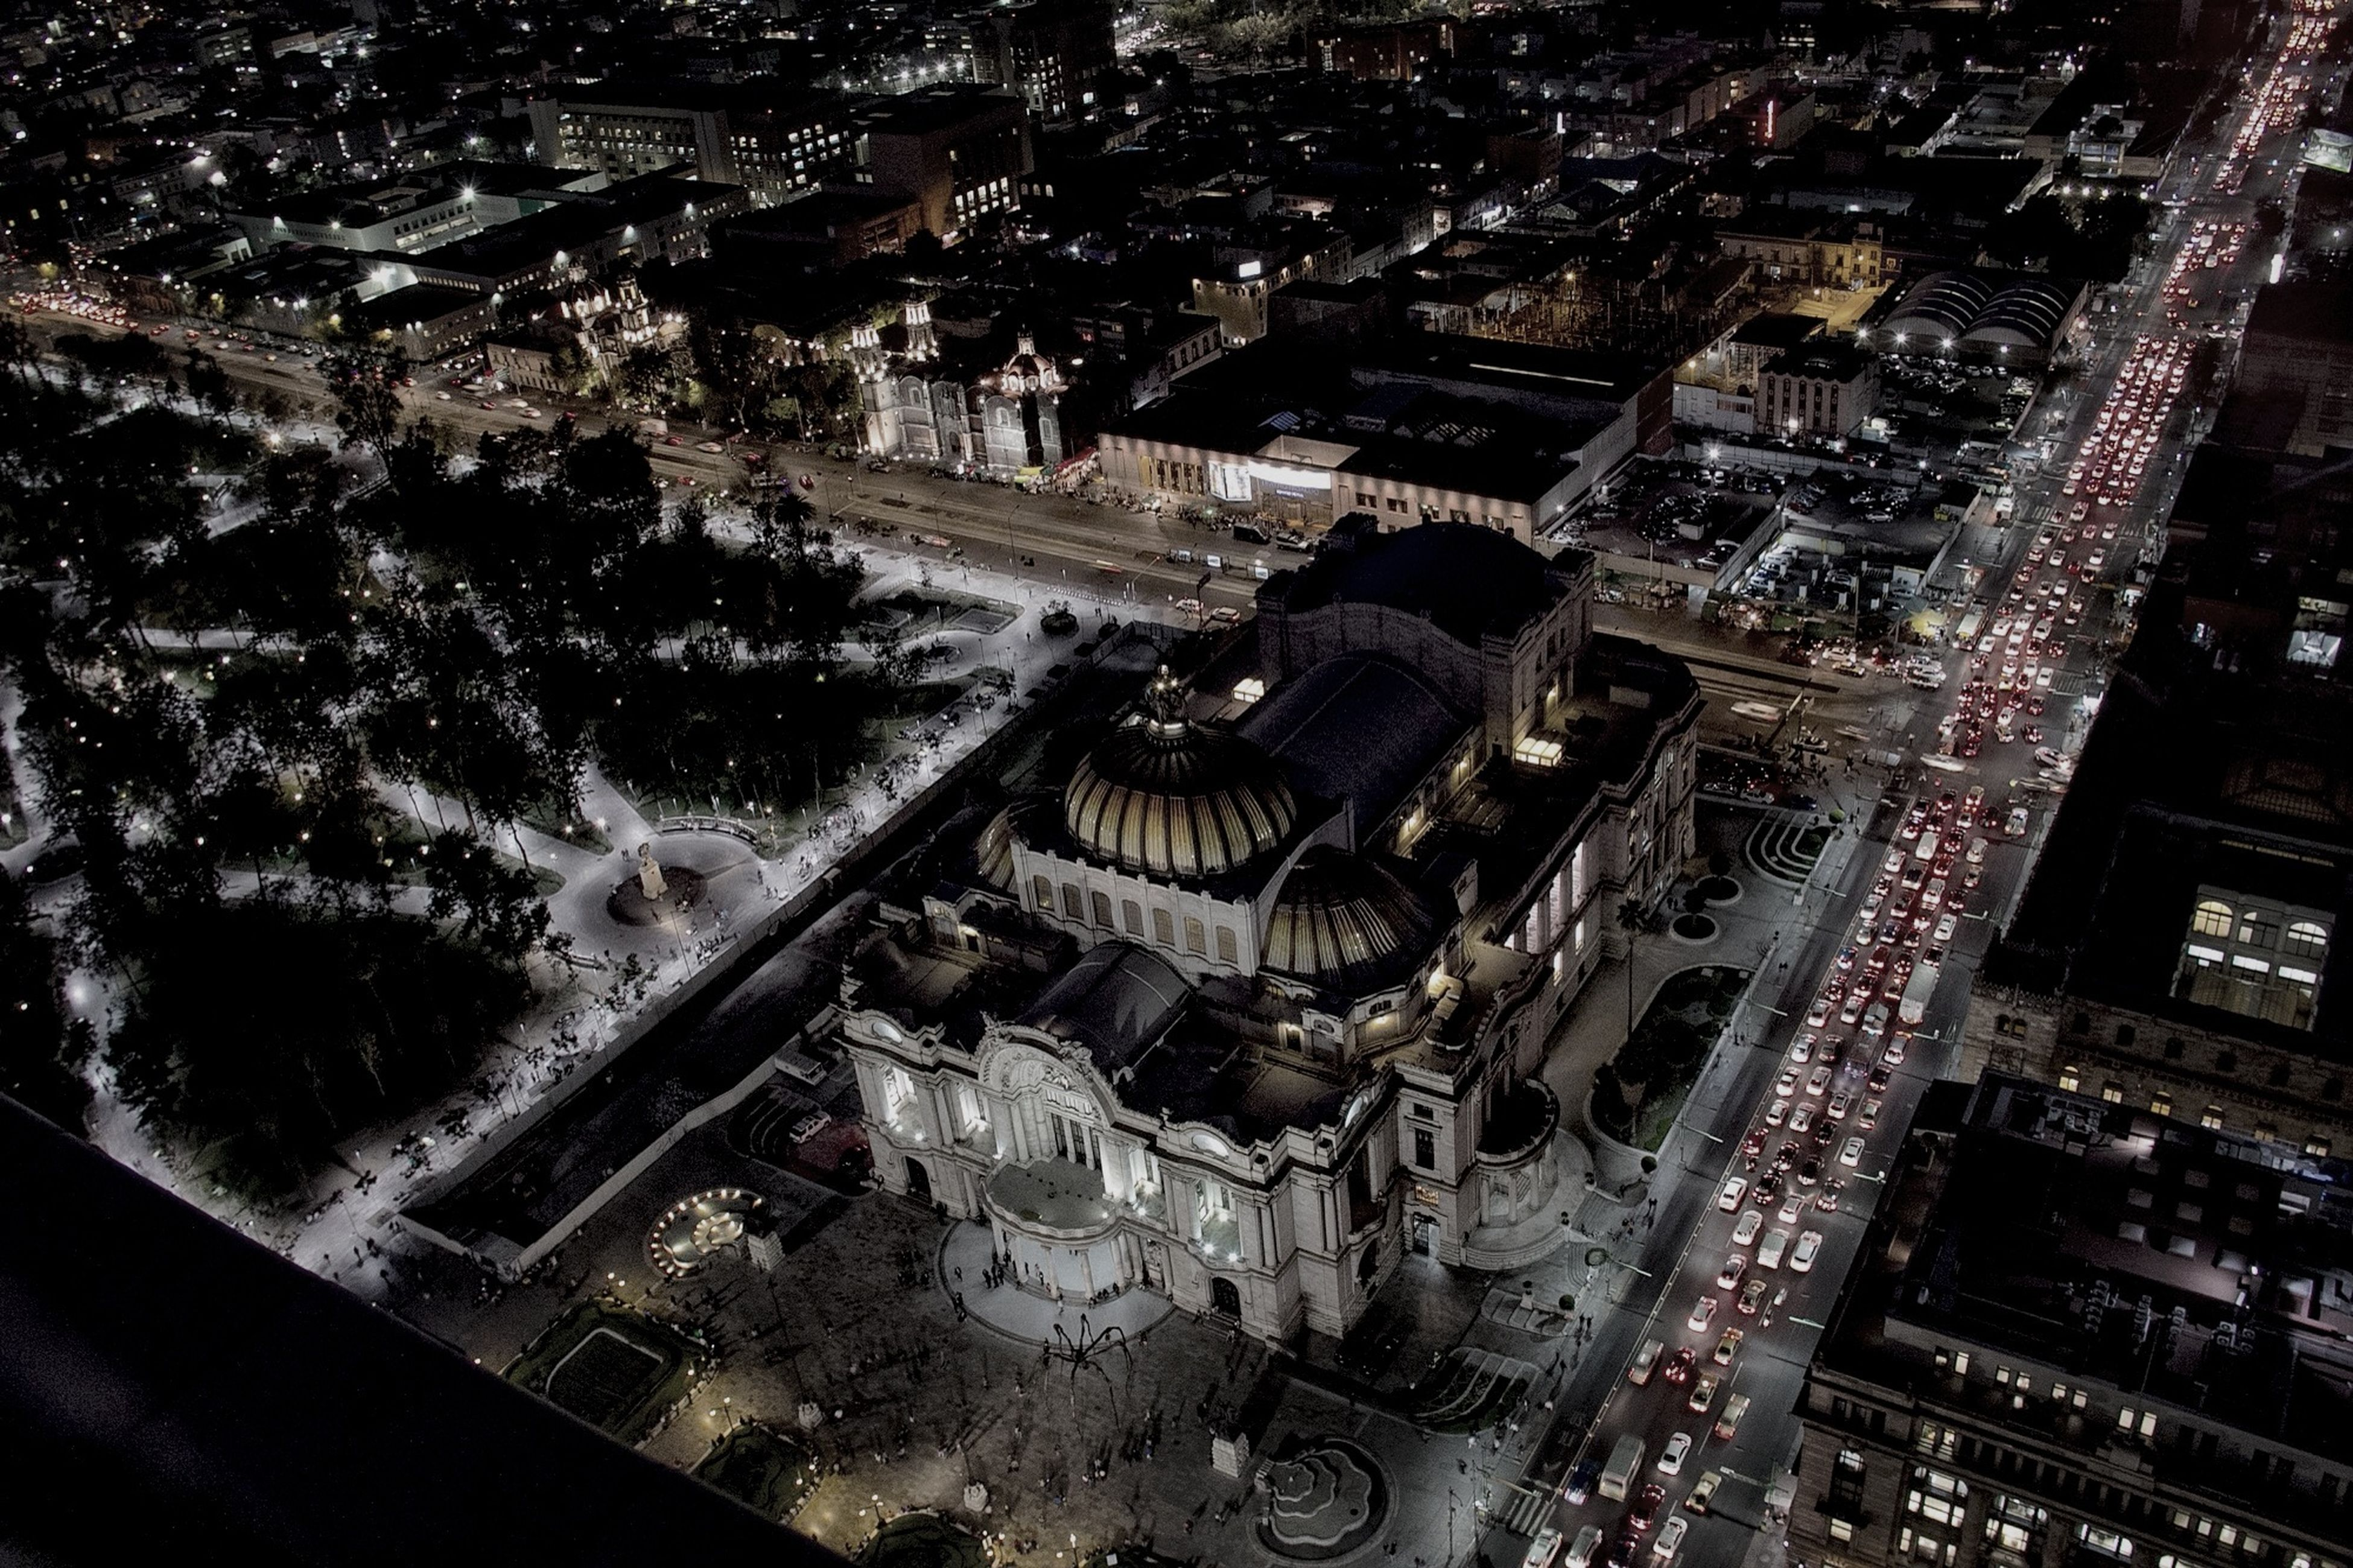 architecture, building exterior, built structure, city, low angle view, night, famous place, tower, tall - high, high angle view, travel destinations, capital cities, history, tilt, travel, international landmark, skyscraper, cityscape, outdoors, tourism